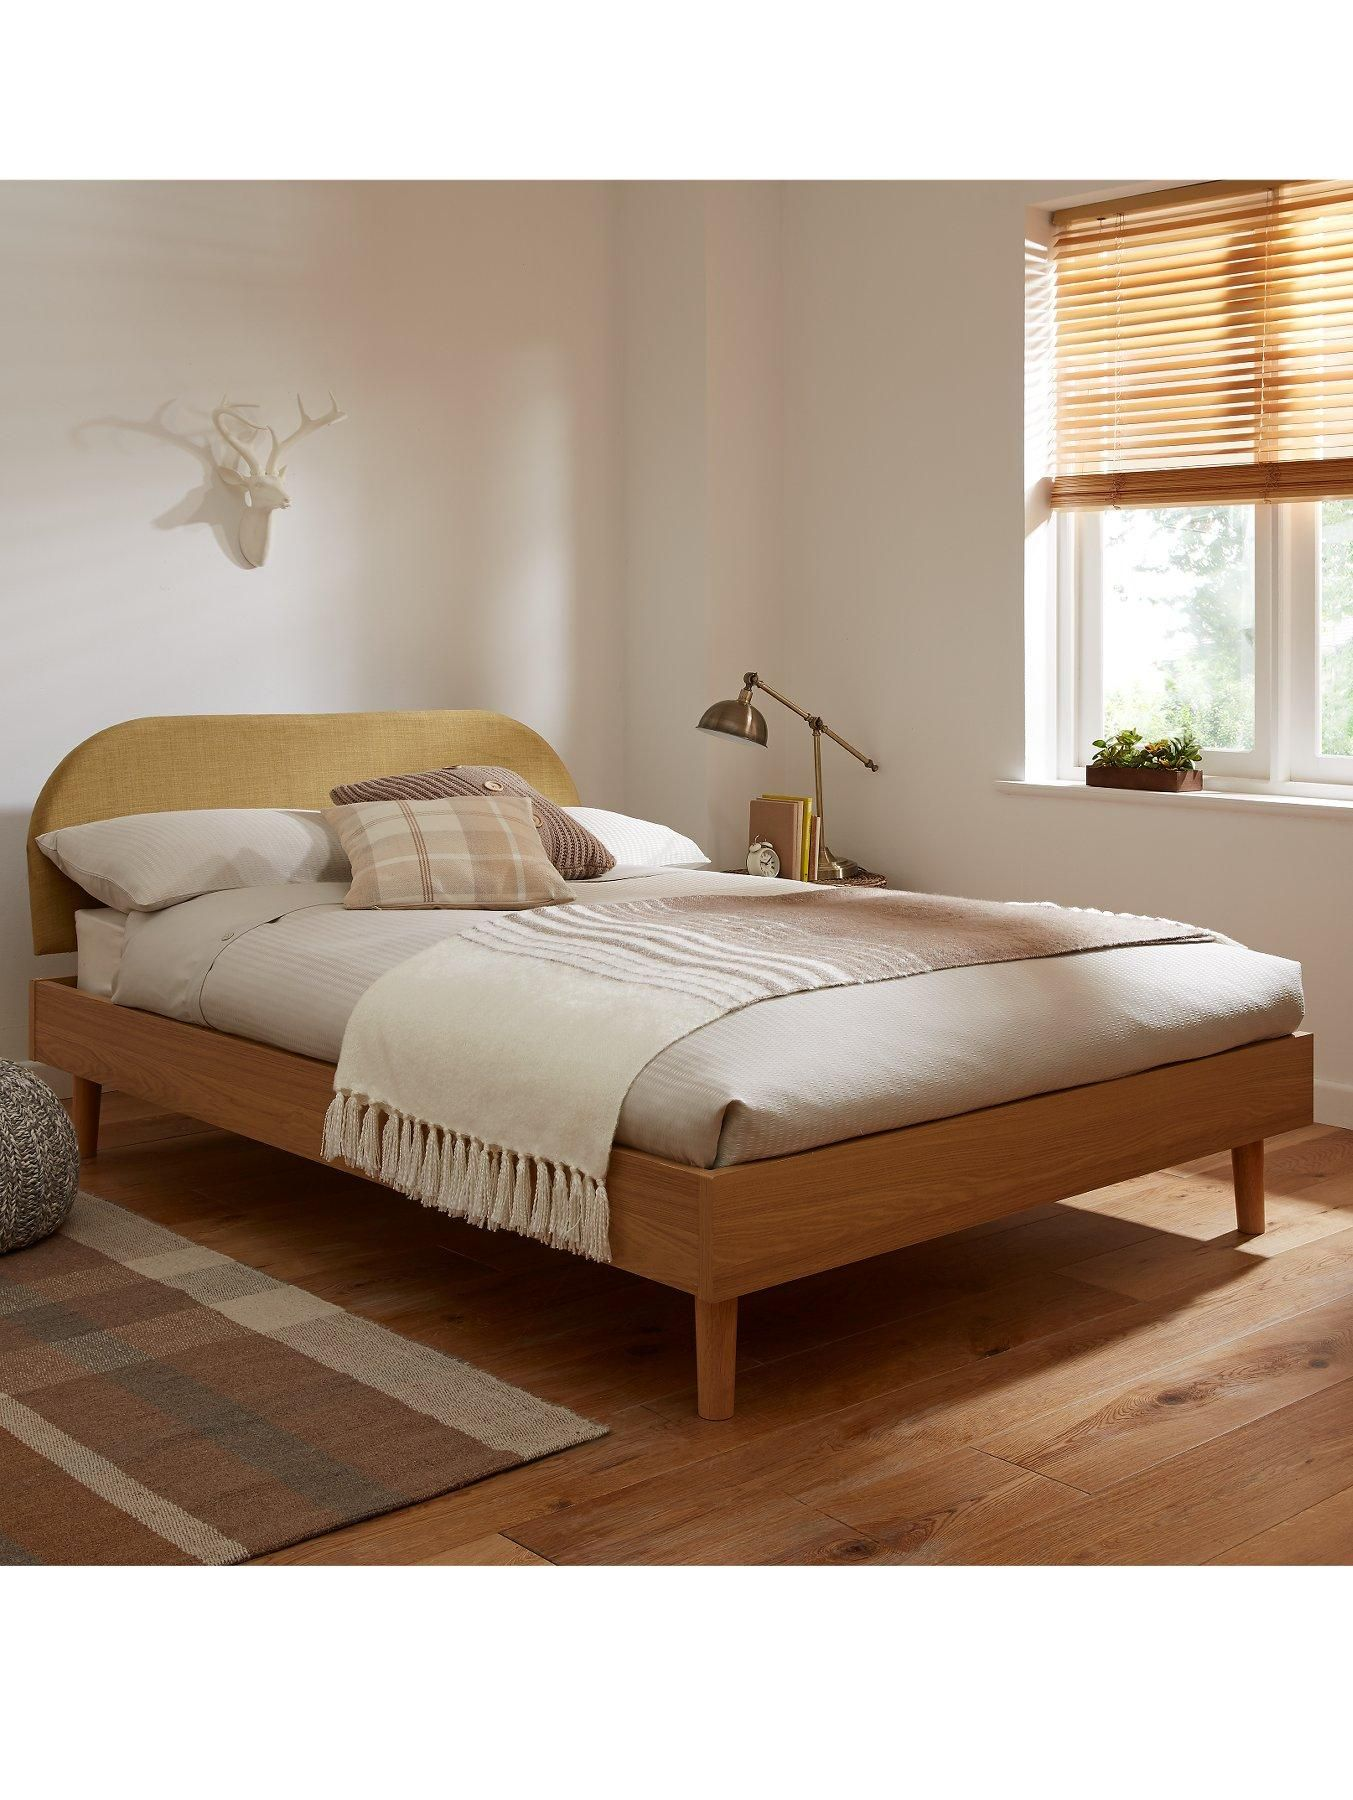 Contemporary scandinavian style wooden bed frame with a for Wooden bed frame with headboard